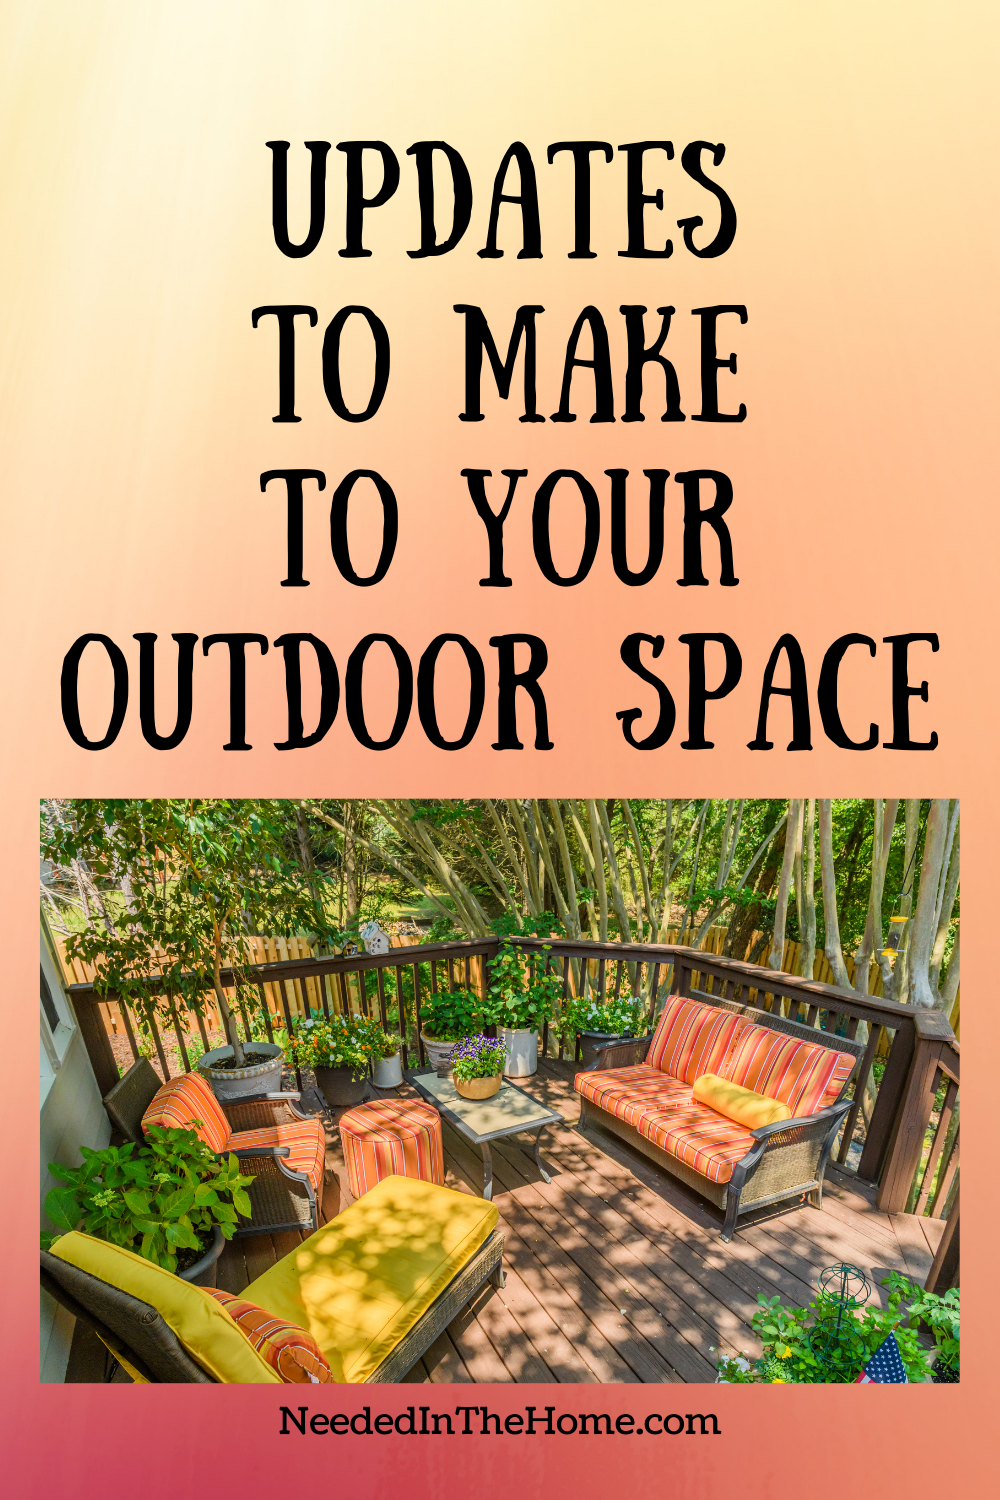 pinterest-pin-description updates to make to your outdoor space deck seating plants backyard neededinthehome